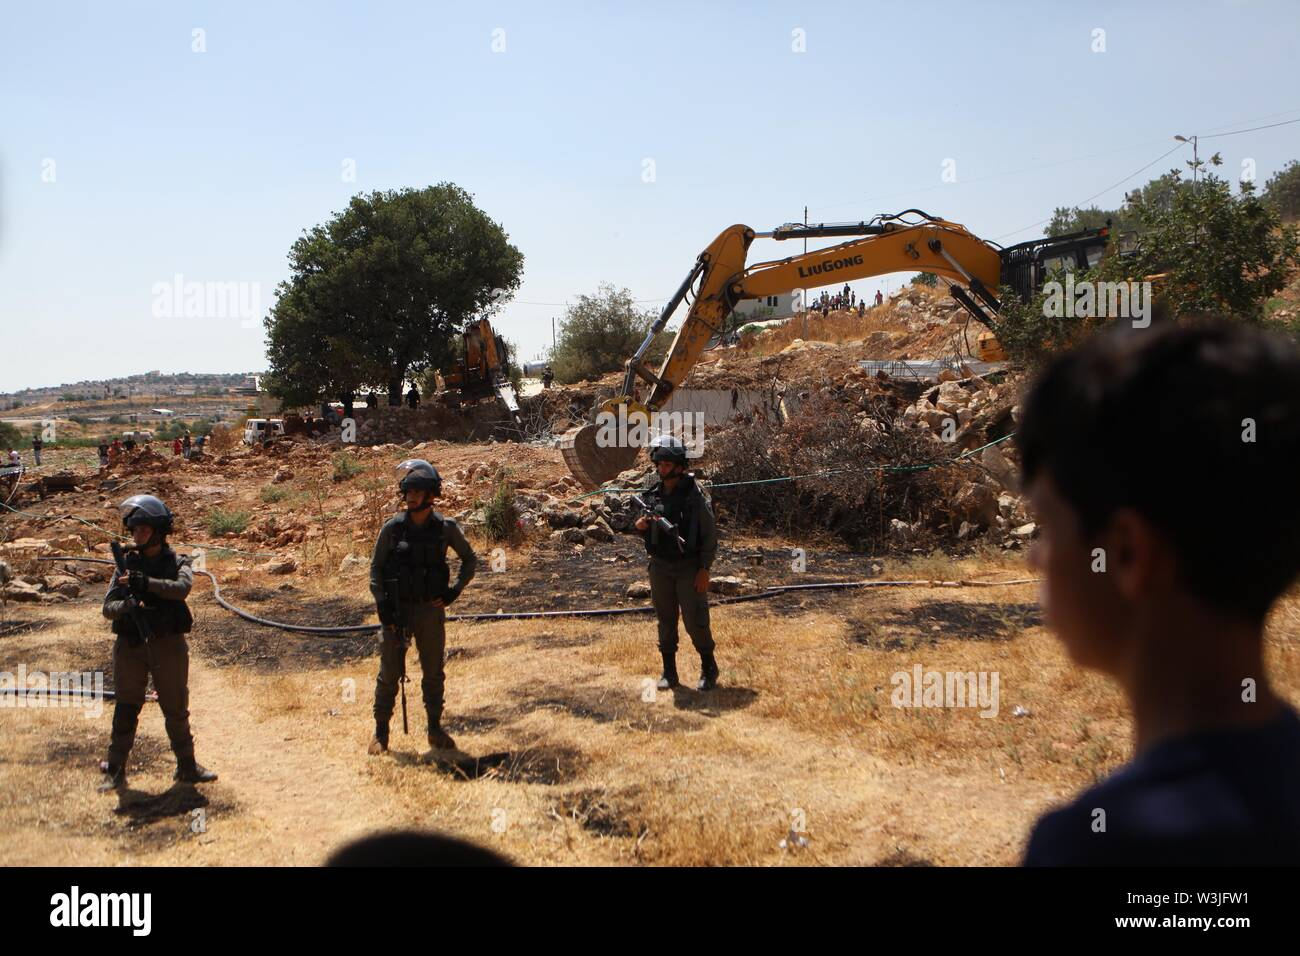 Hebron. 16th July, 2019. Israeli bulldozers demolish water wells in 'Area C' of the West Bank city of Hebron, July 16, 2019. The Israeli army demolished water wells and other facilities used by Palestinians in the area for lacking construction license. Credit: Mamoun Wazwaz/Xinhua/Alamy Live News - Stock Image